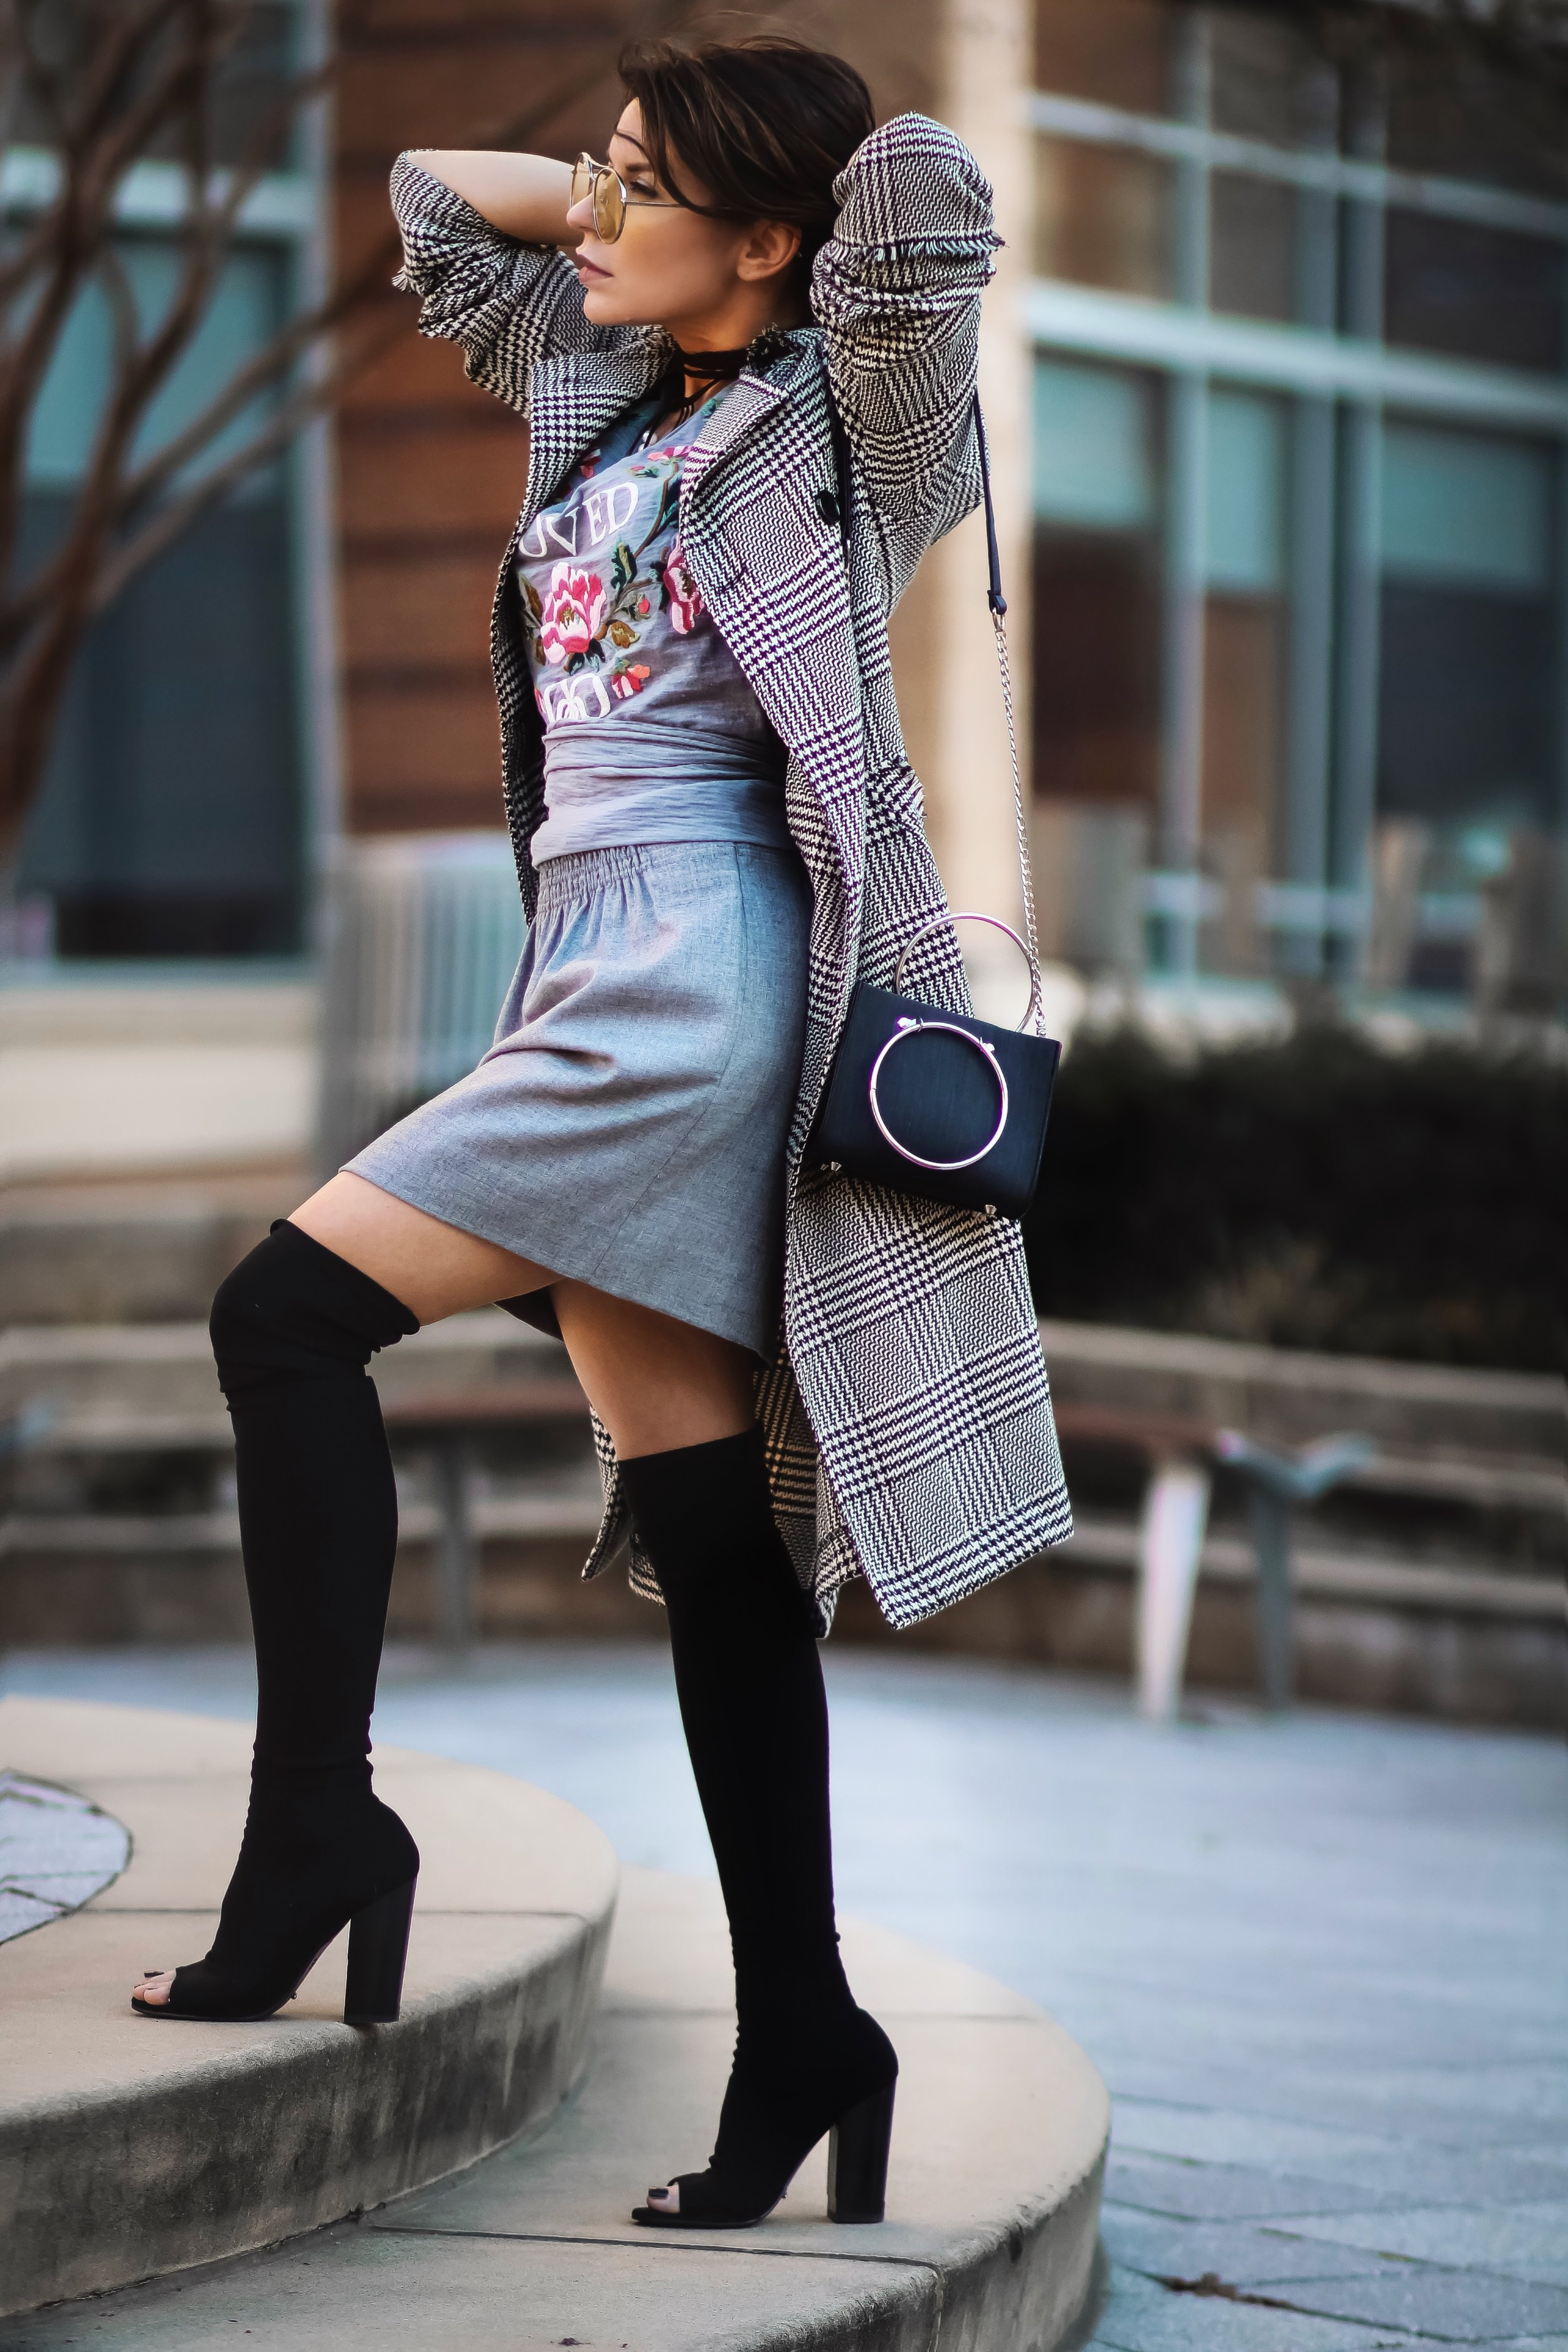 isabel-alexander-gray-outfit